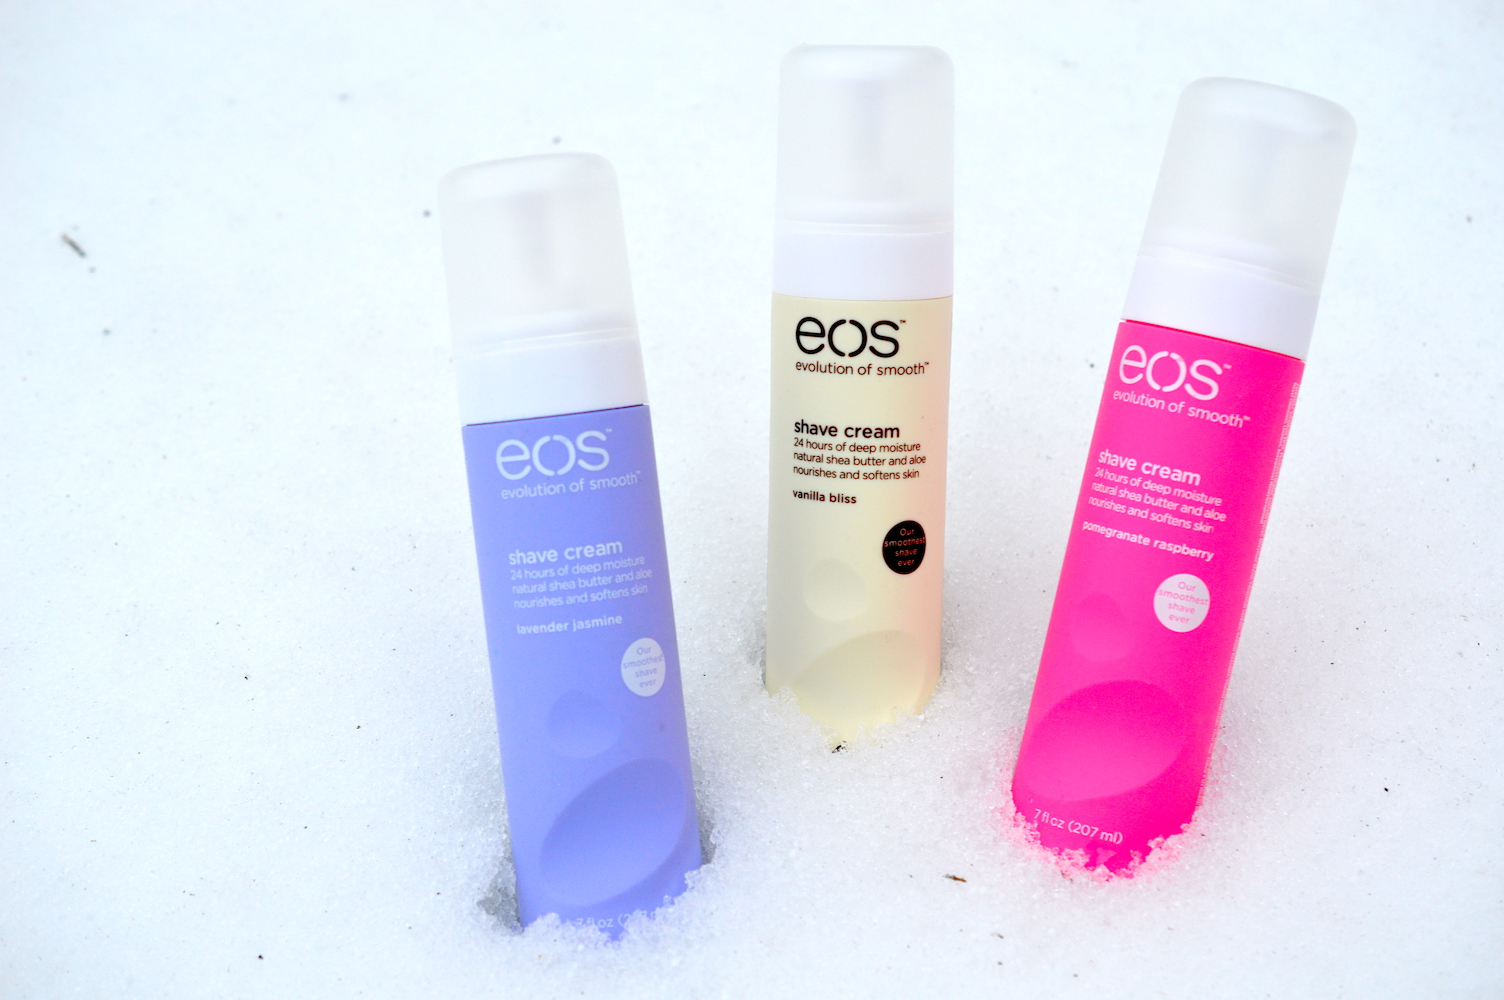 EOS shave cream review